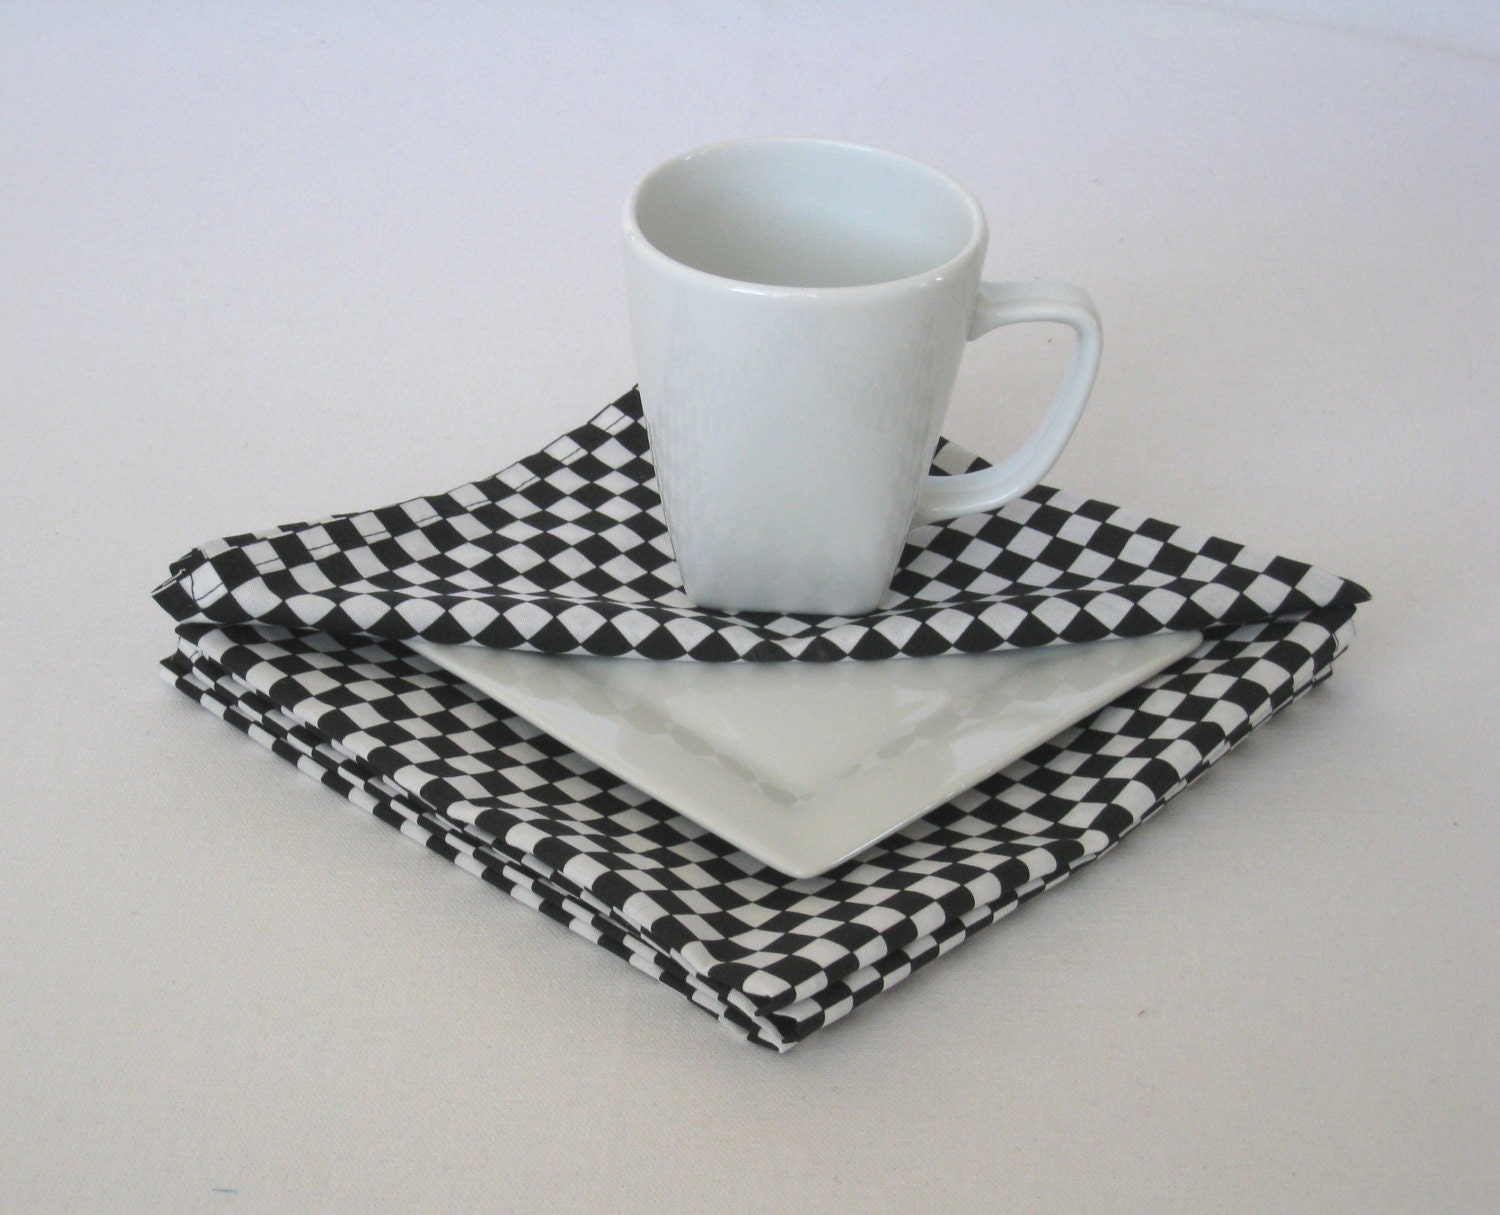 Checkered Cloth Napkins Black And White Cotton Napkins